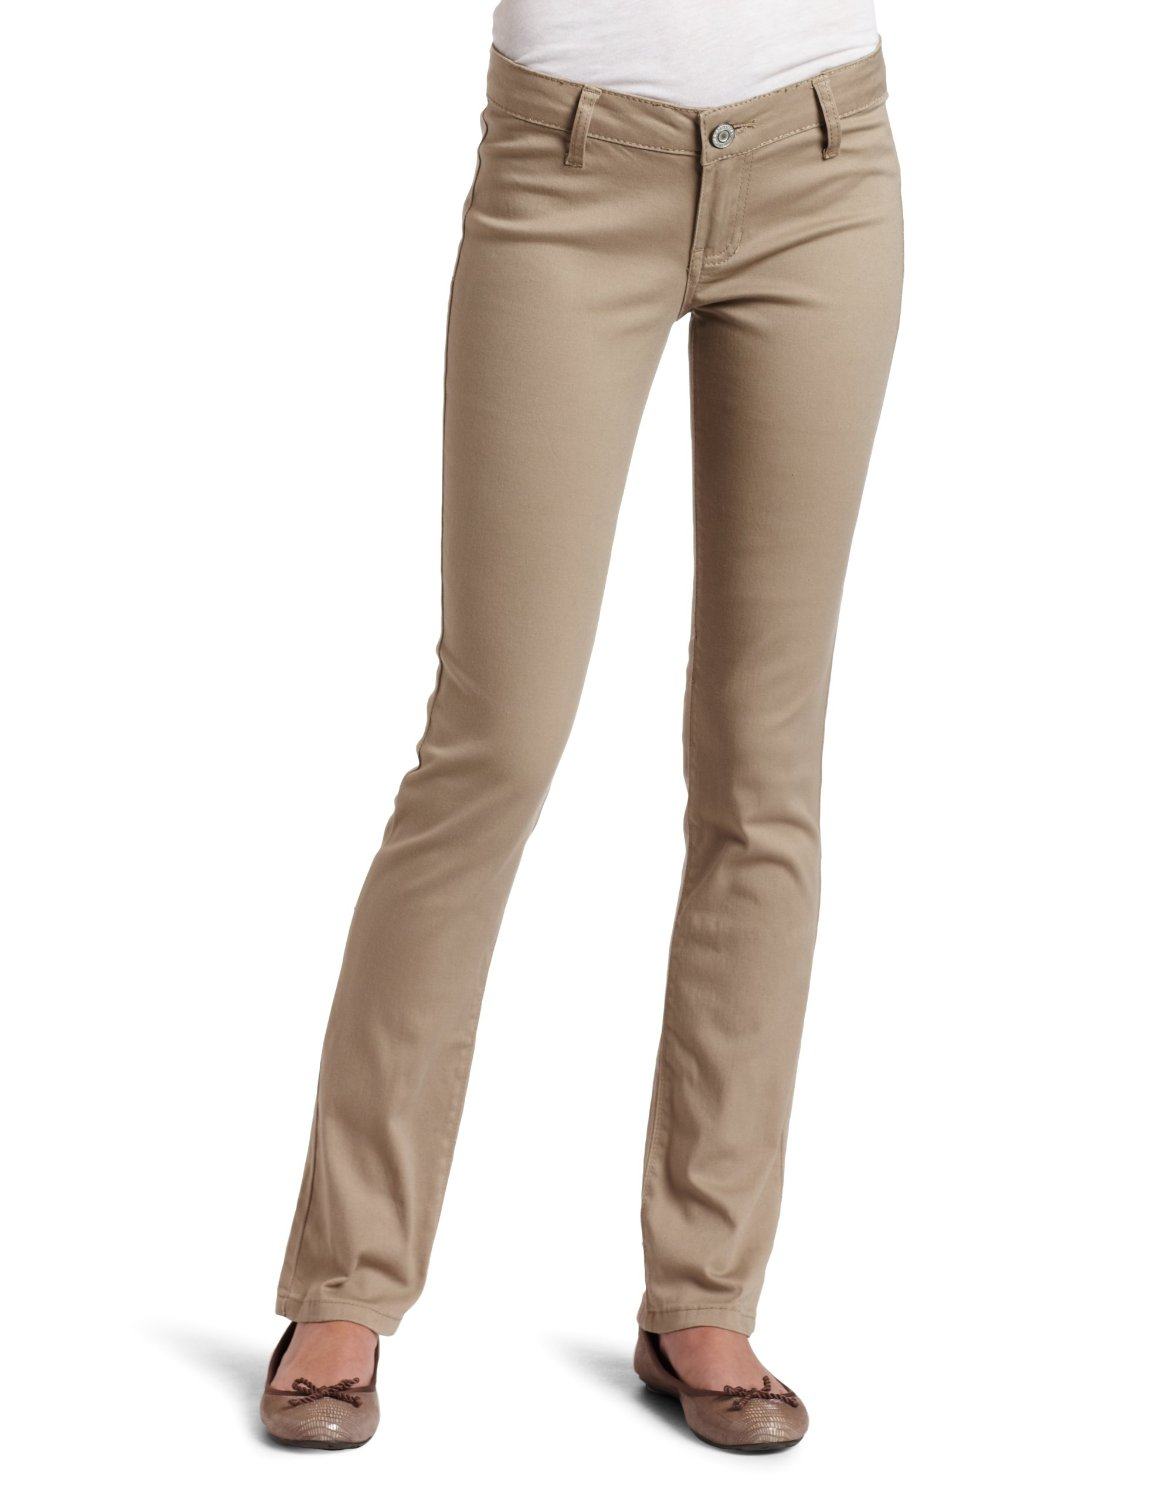 Awesome Womens Khaki Work Pants  HighFashionTips